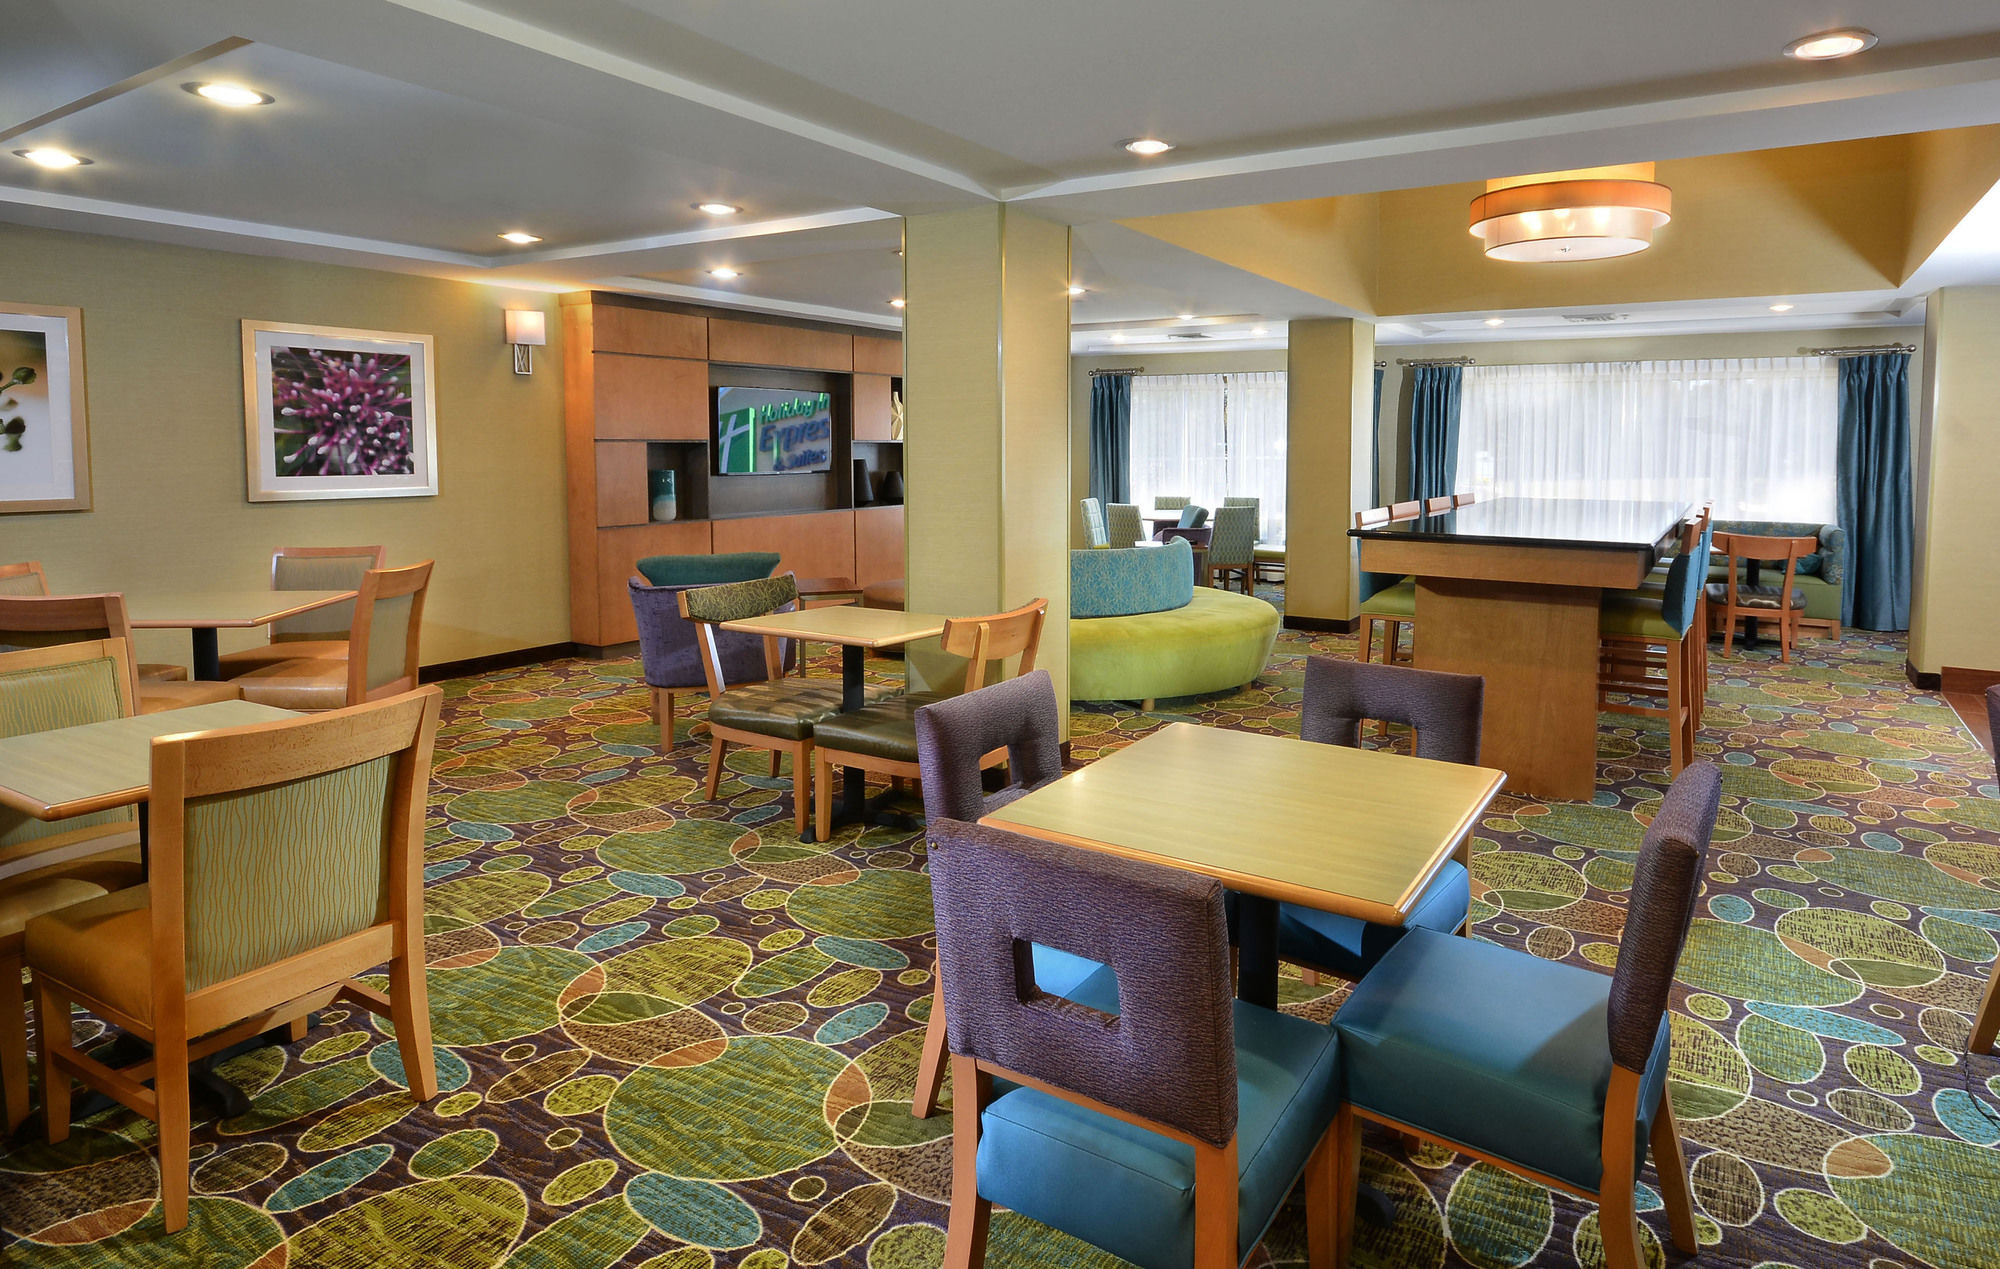 Holiday Inn Express Hotel & Suites High Point South in Archdale, NC